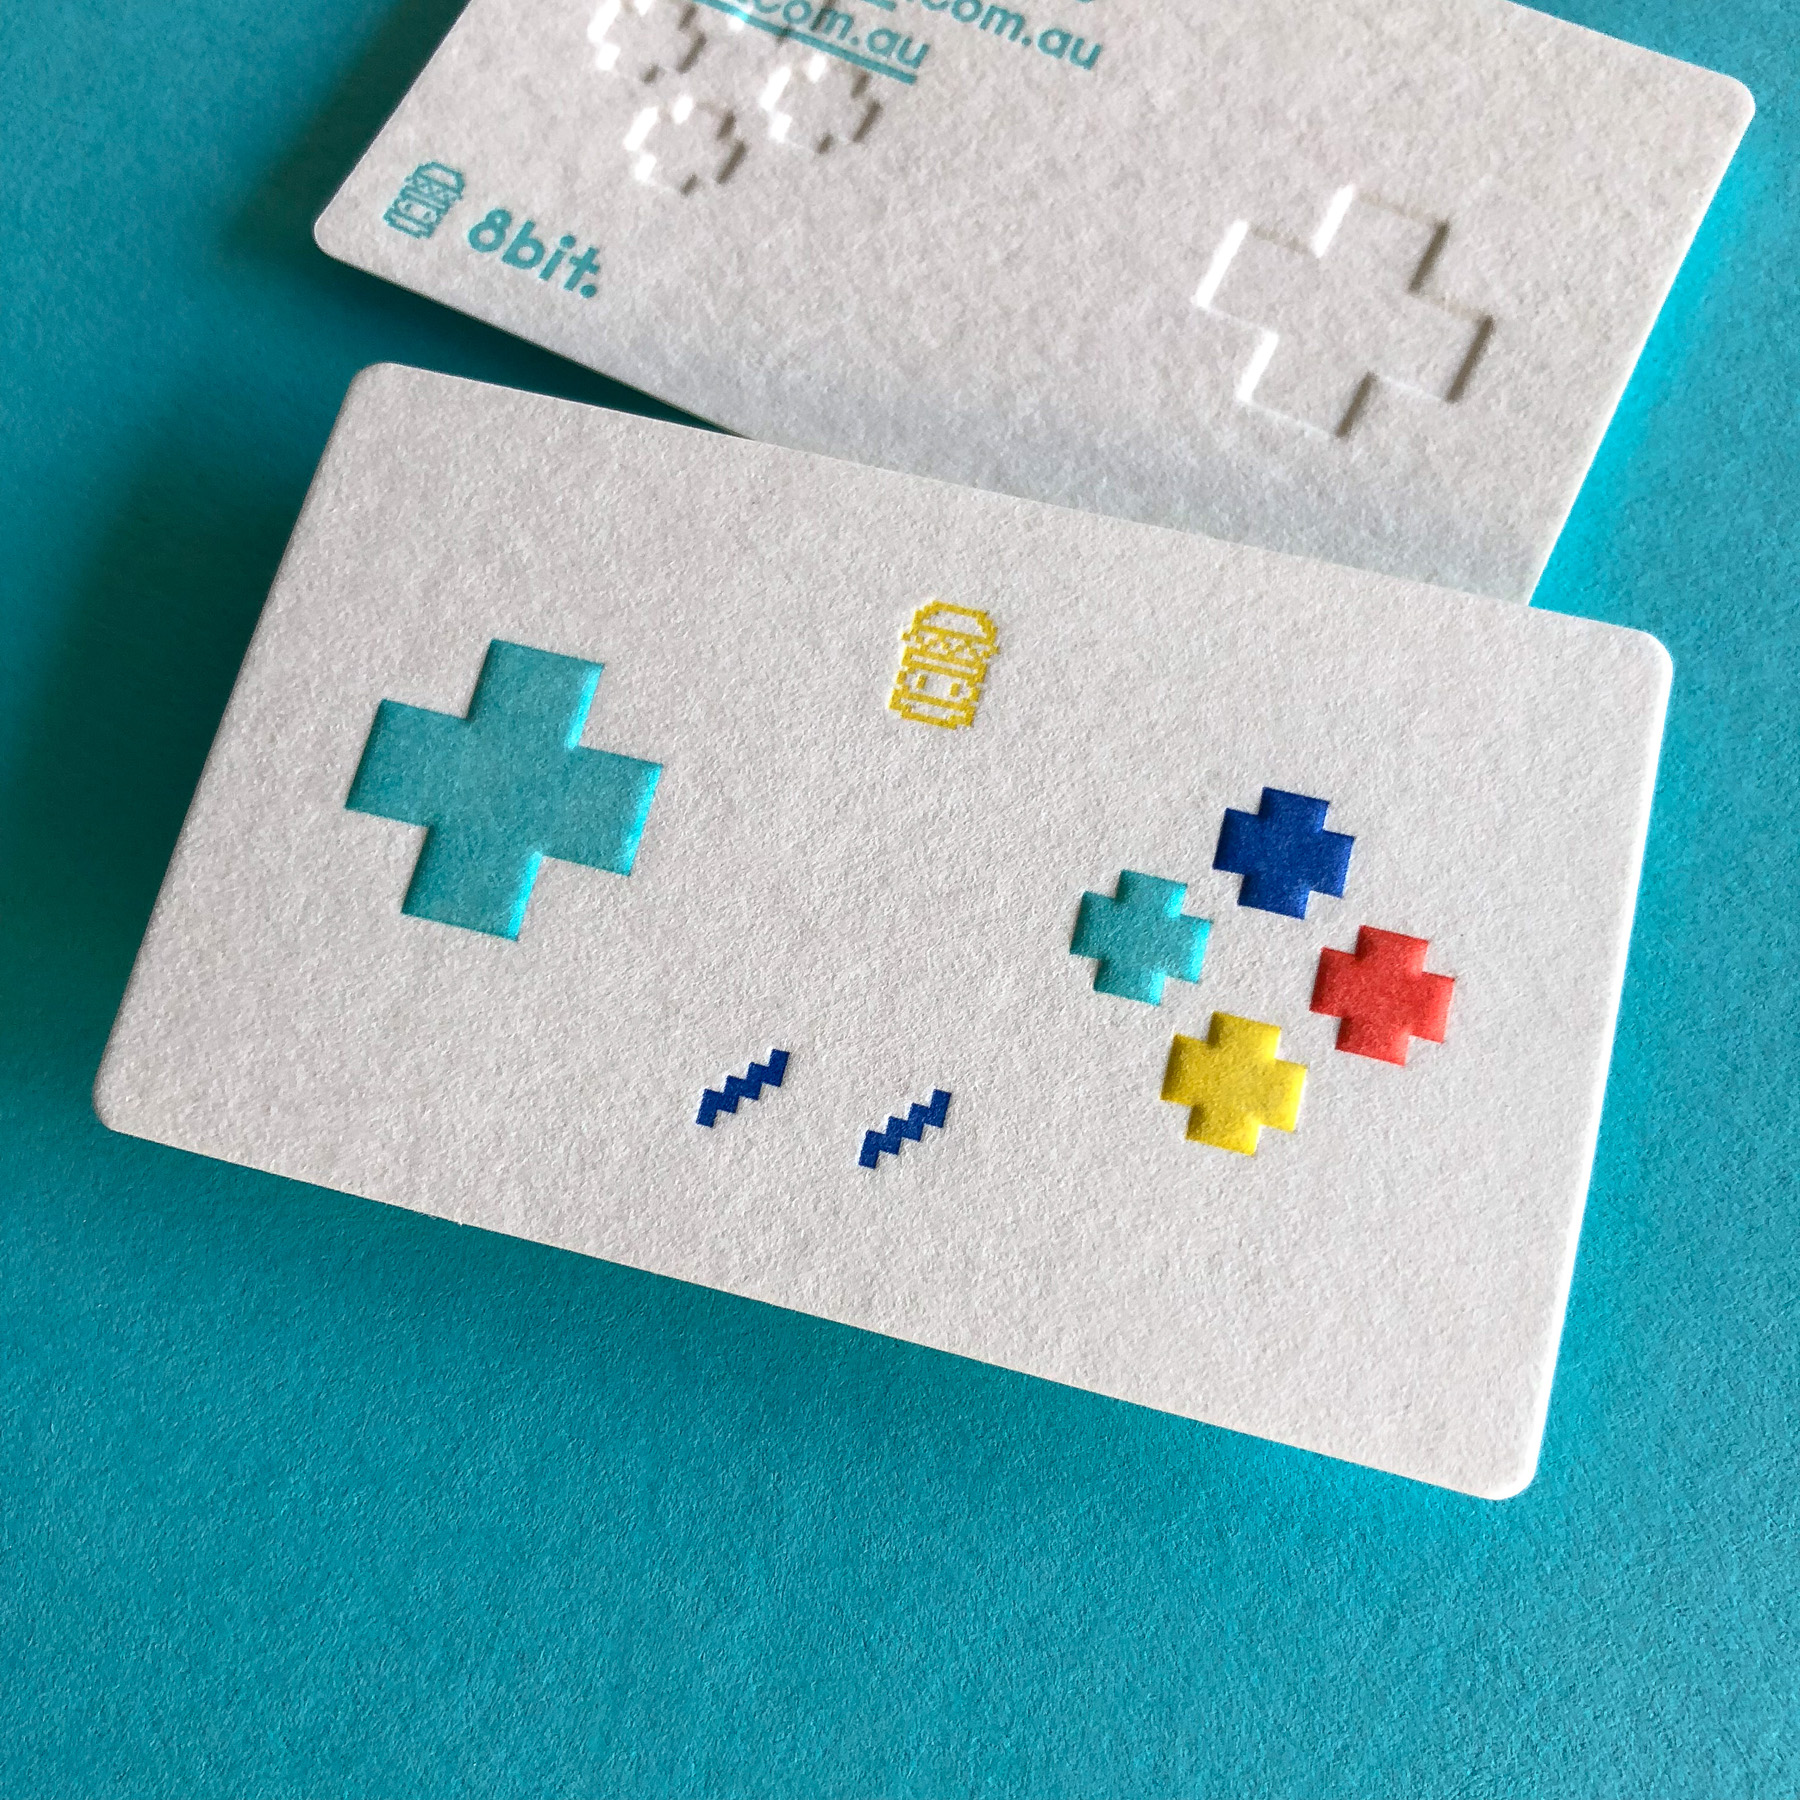 Unique letterpress embossed business cards for 8 Bit Burger on Wild 4